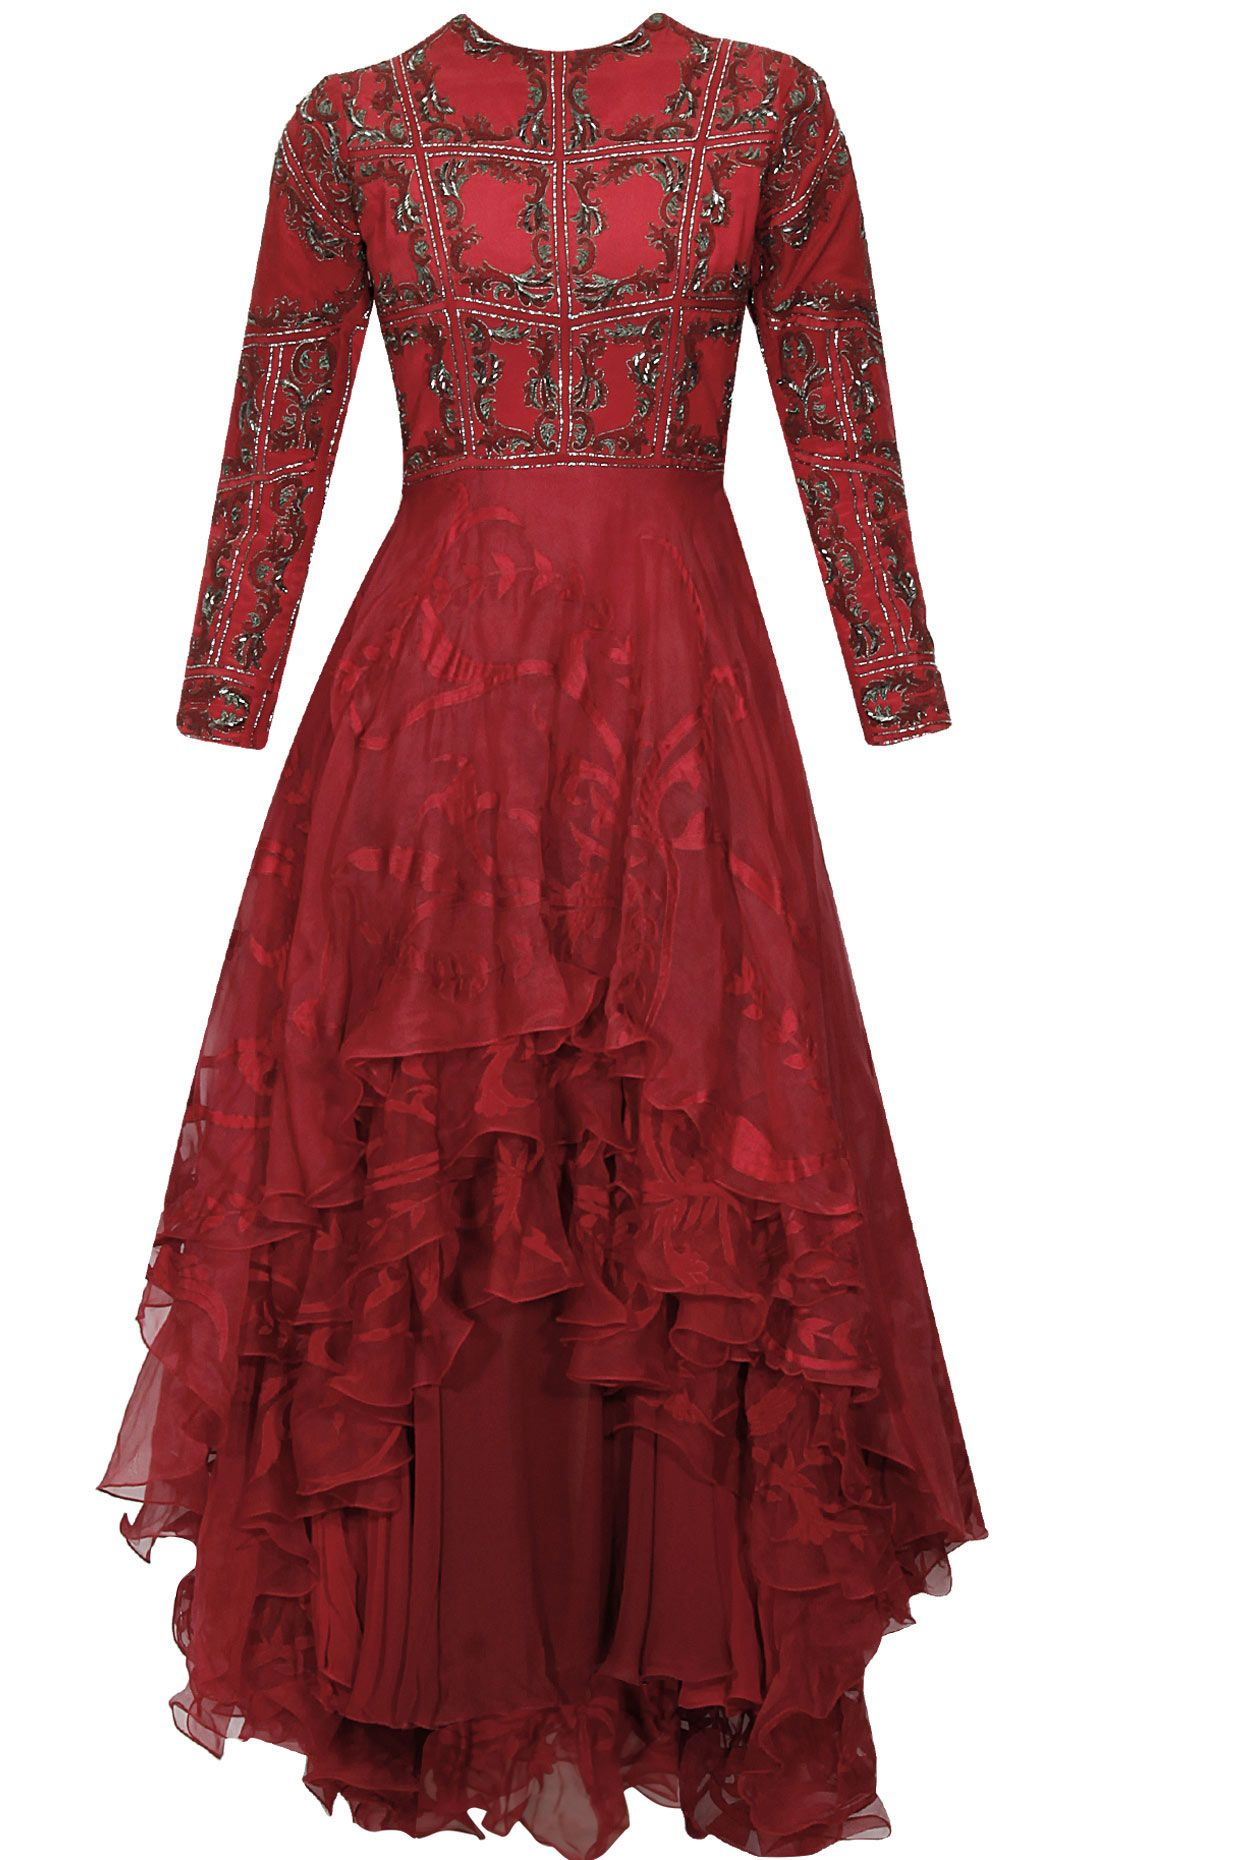 Red block print embellished asymmetrical layered gown dress